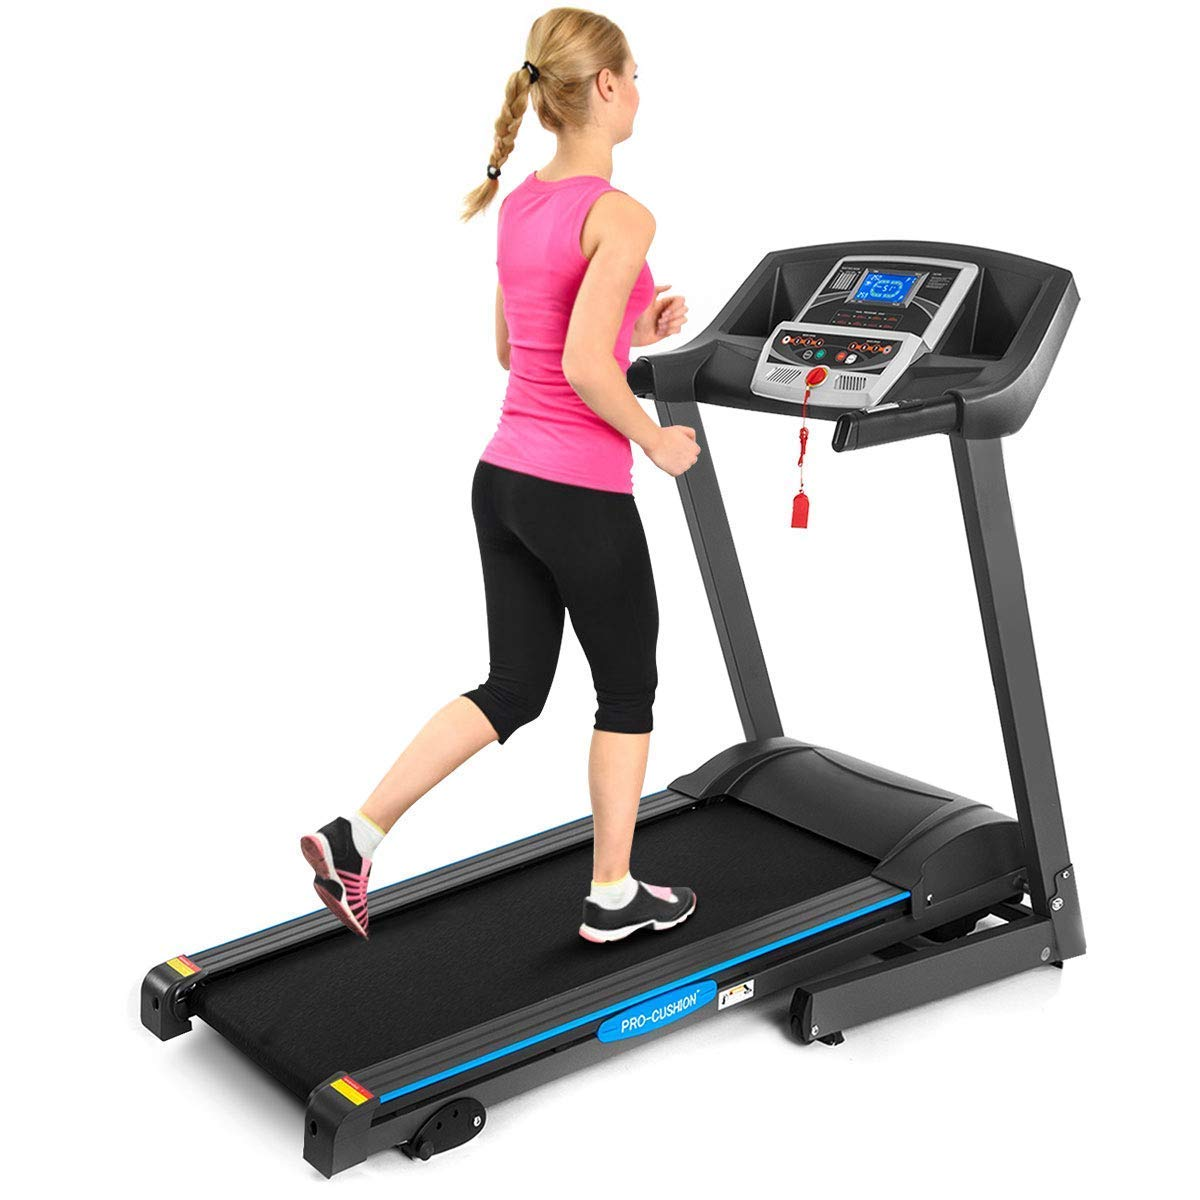 GYMAX Electric Folding Cardio Exercise Treadmill Fitness Jogging Running Machine Treadmill w Manual Incline